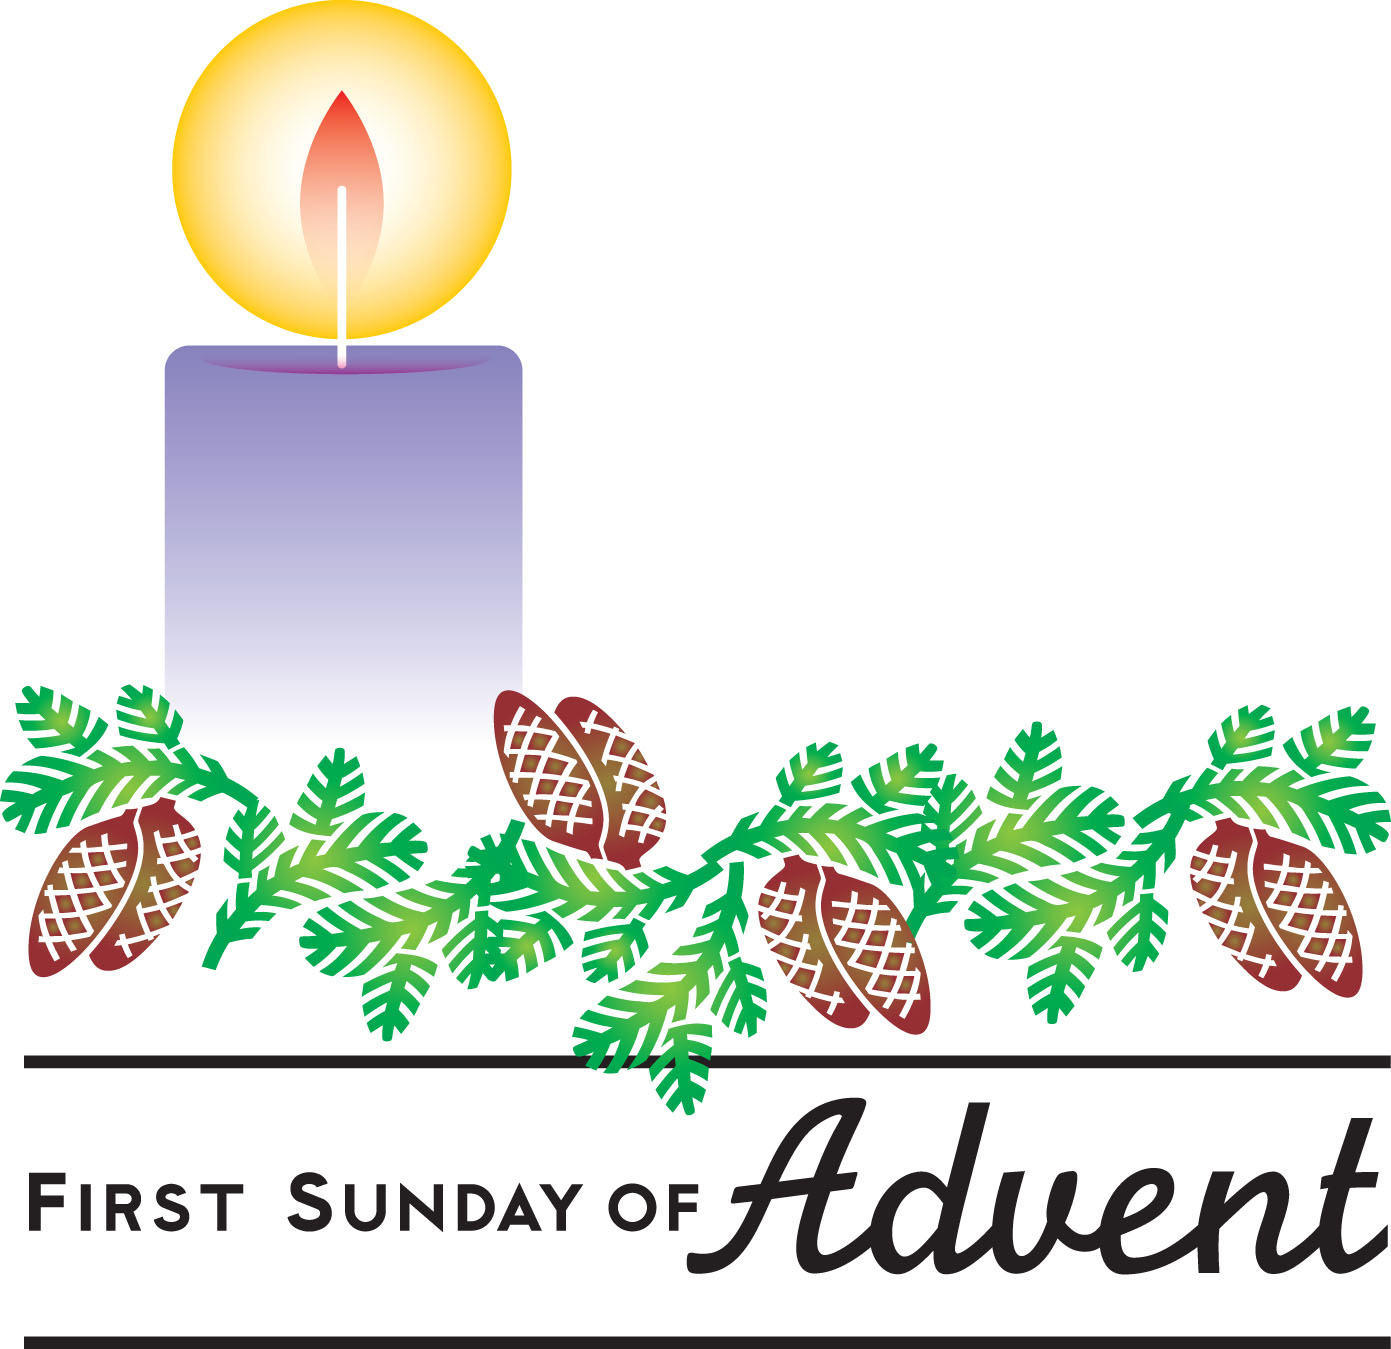 Free Clipart For First Sunday After Christmas Day Clipground